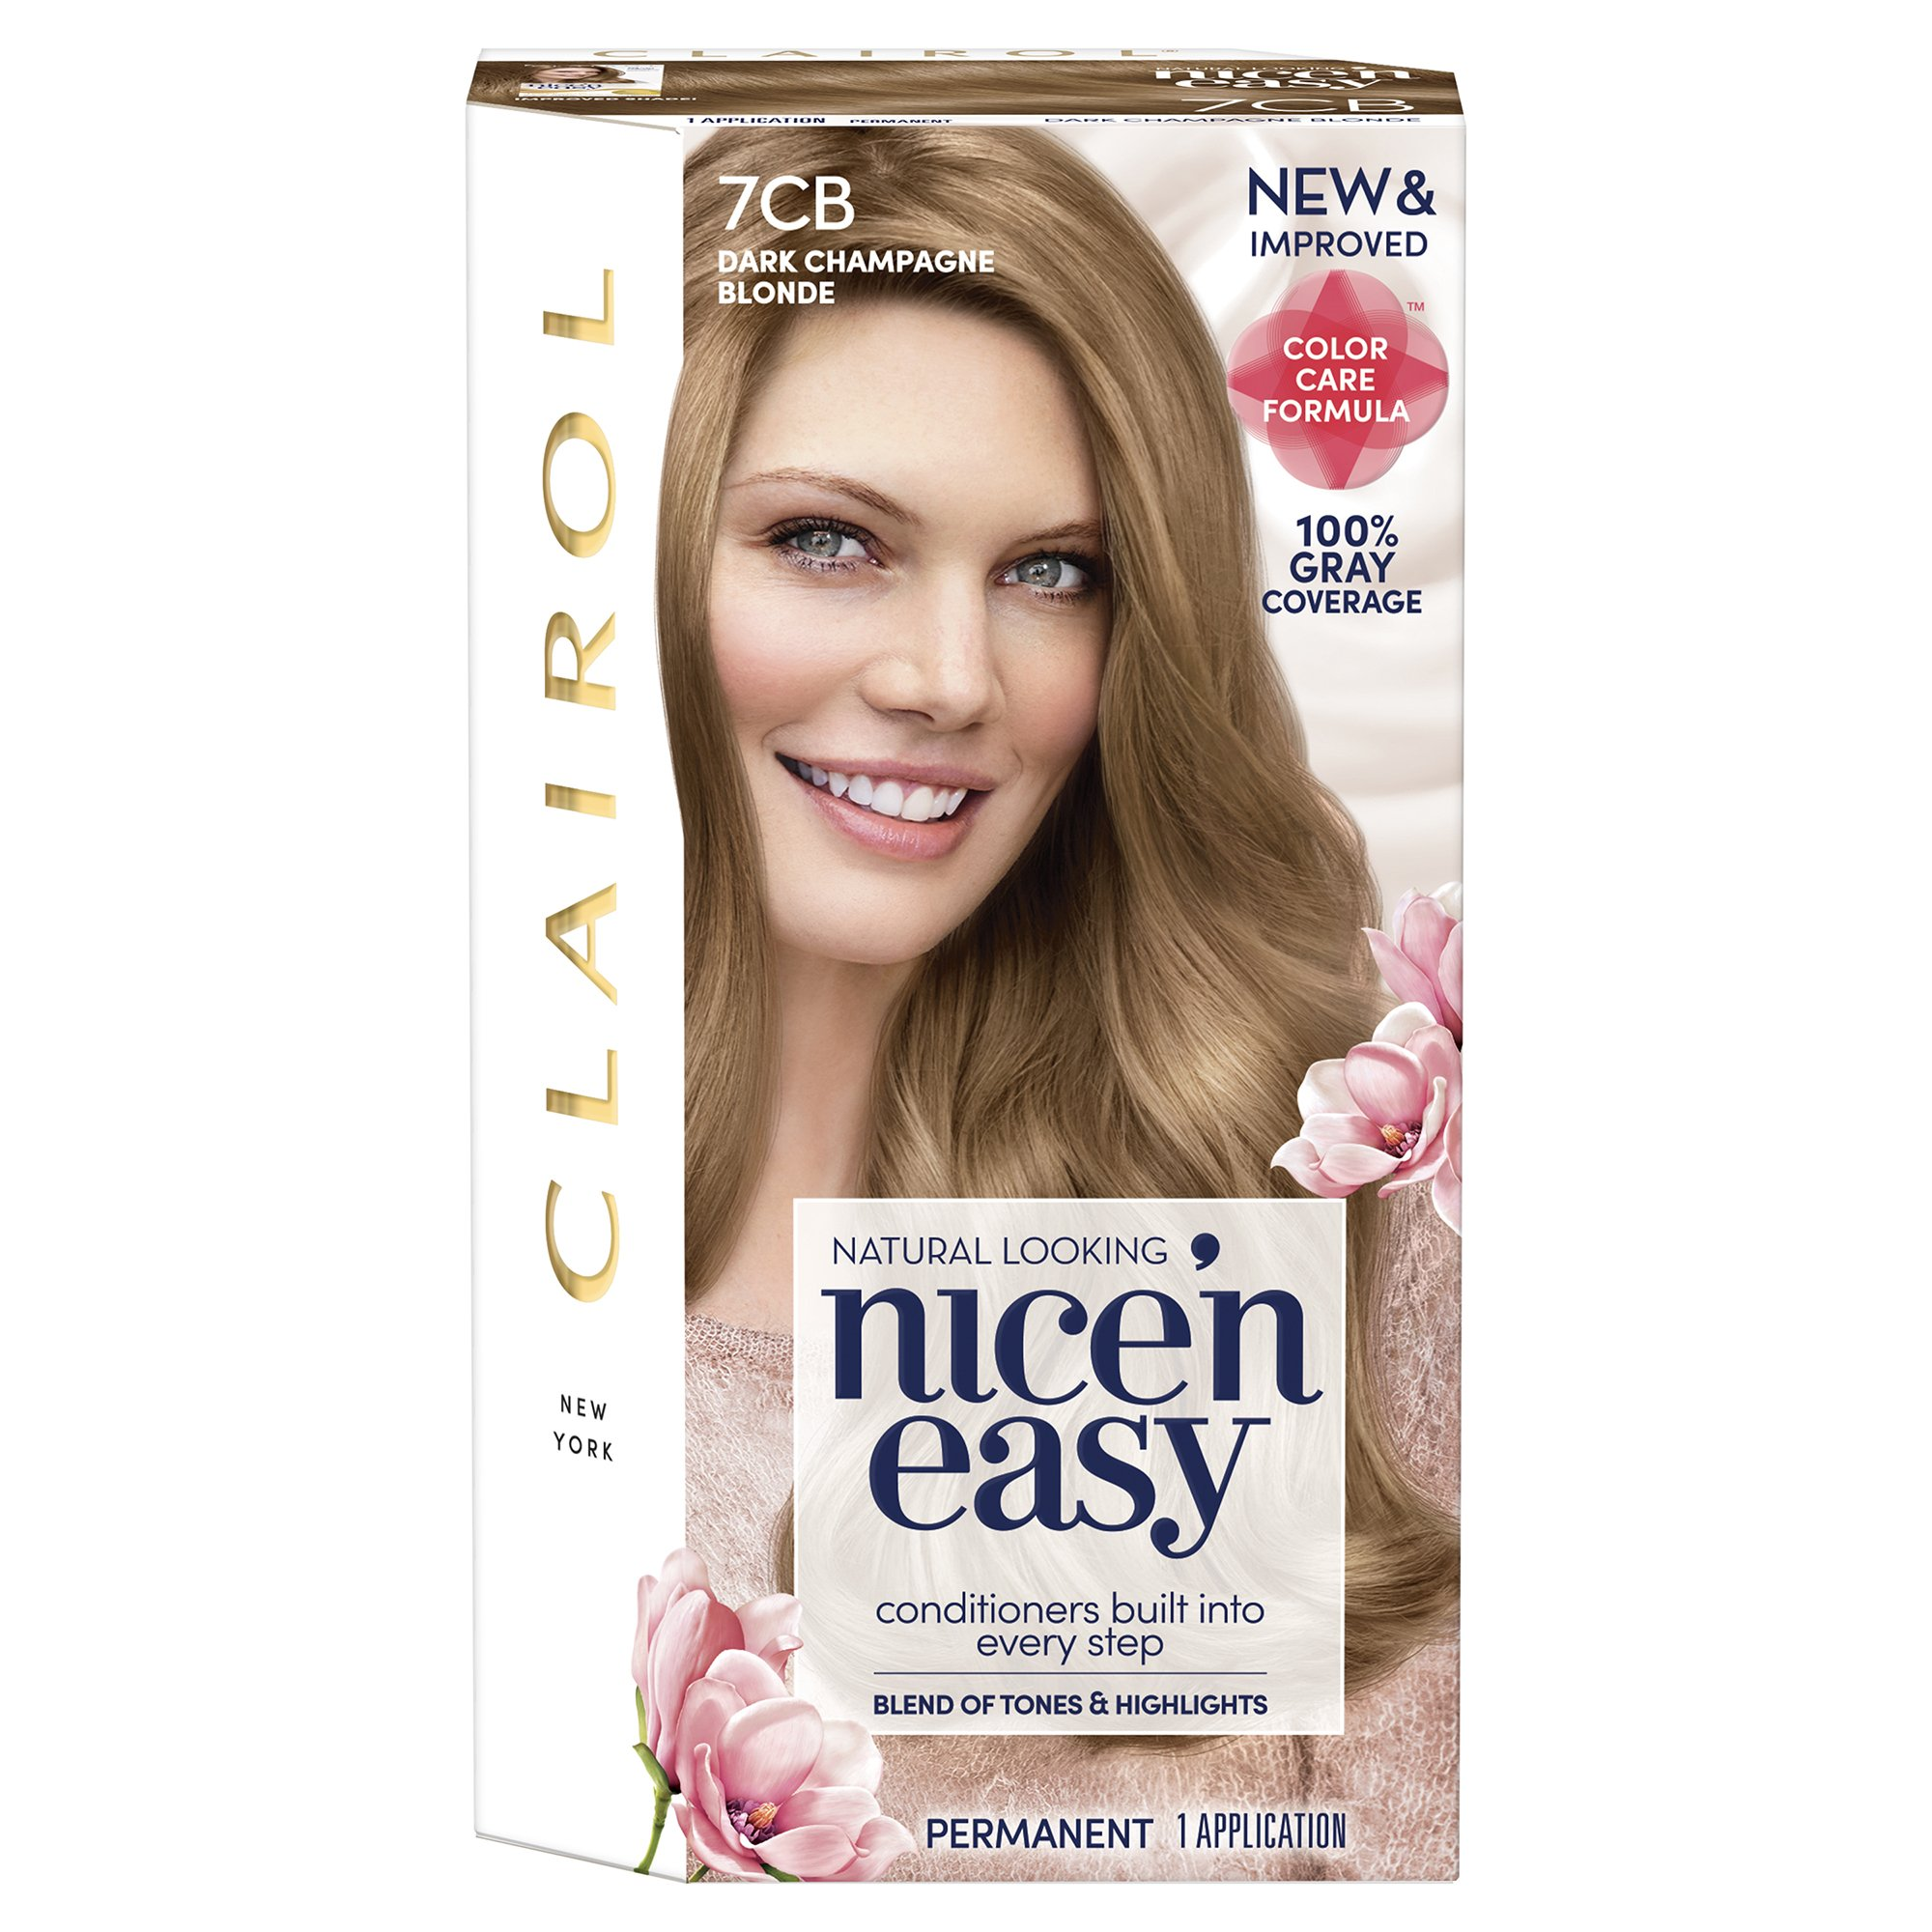 Clairol Nice 'n Easy, 7CB/106B Dark Champagne Blonde, Permanent Hair Color, 1 Kit (Pack of 3) (Packaging May Vary) by Clairol